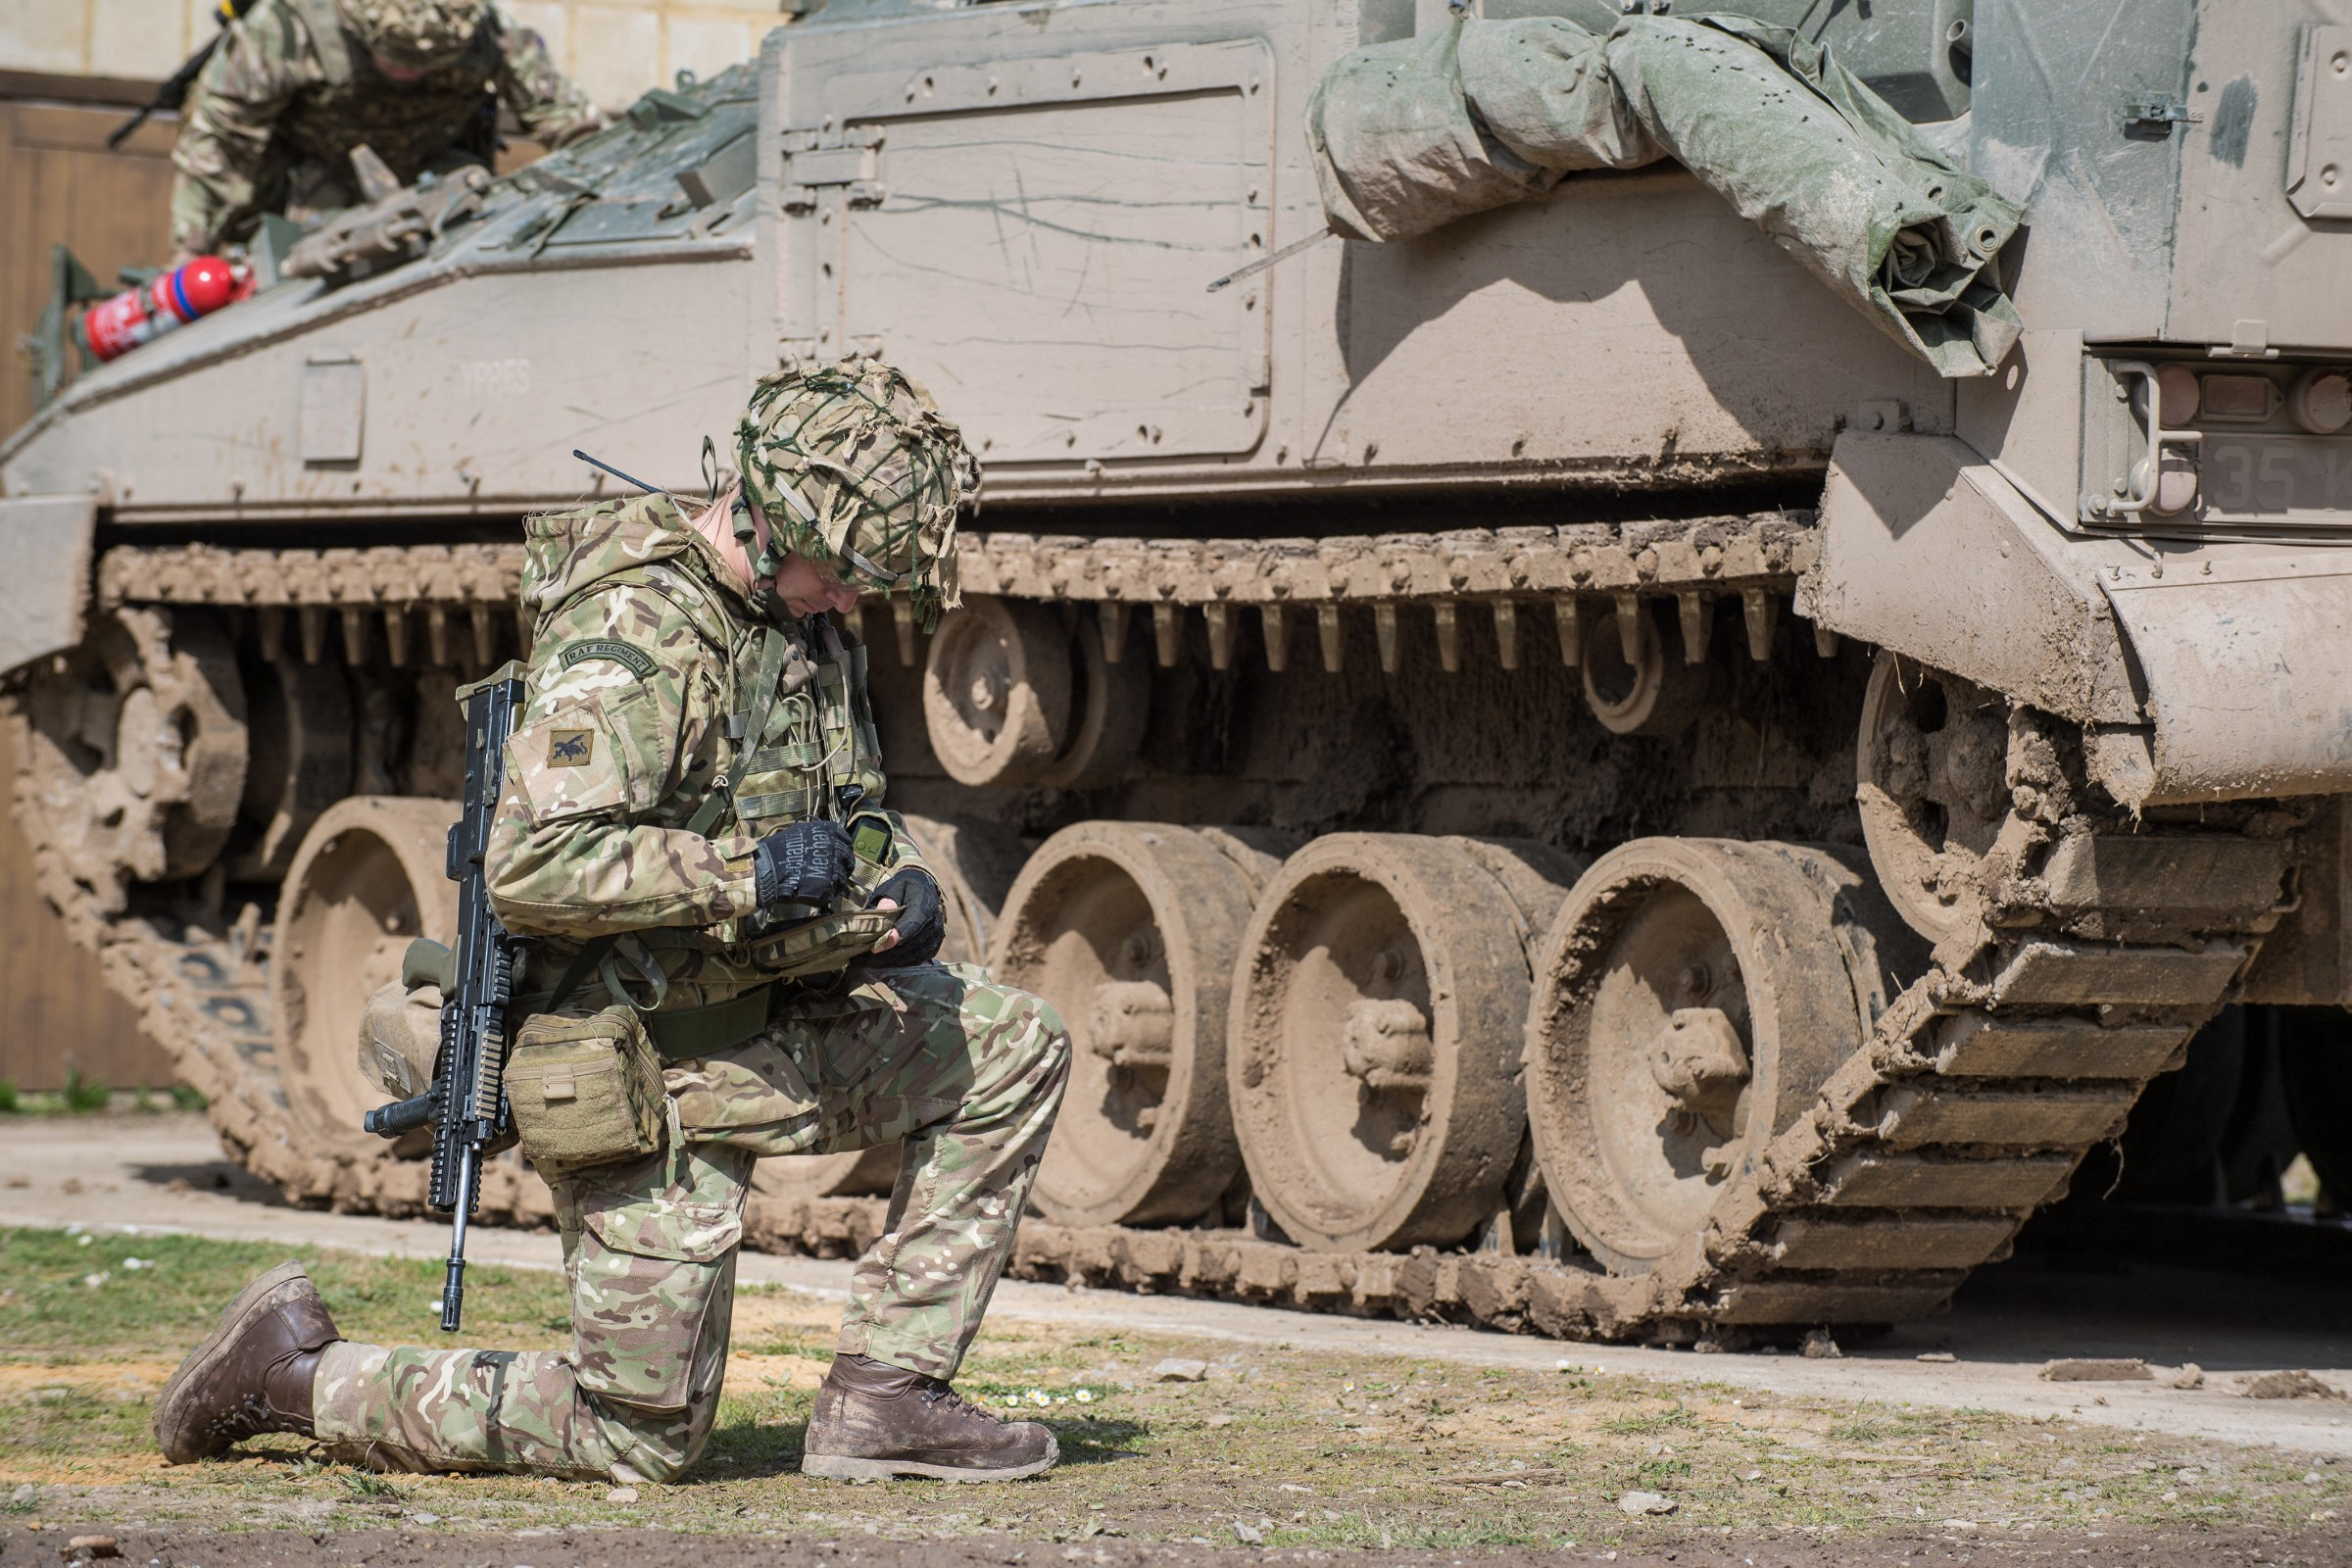 Soldier kneeling down beside an armoured vehicle working with handheld technology to relay information to others in the field